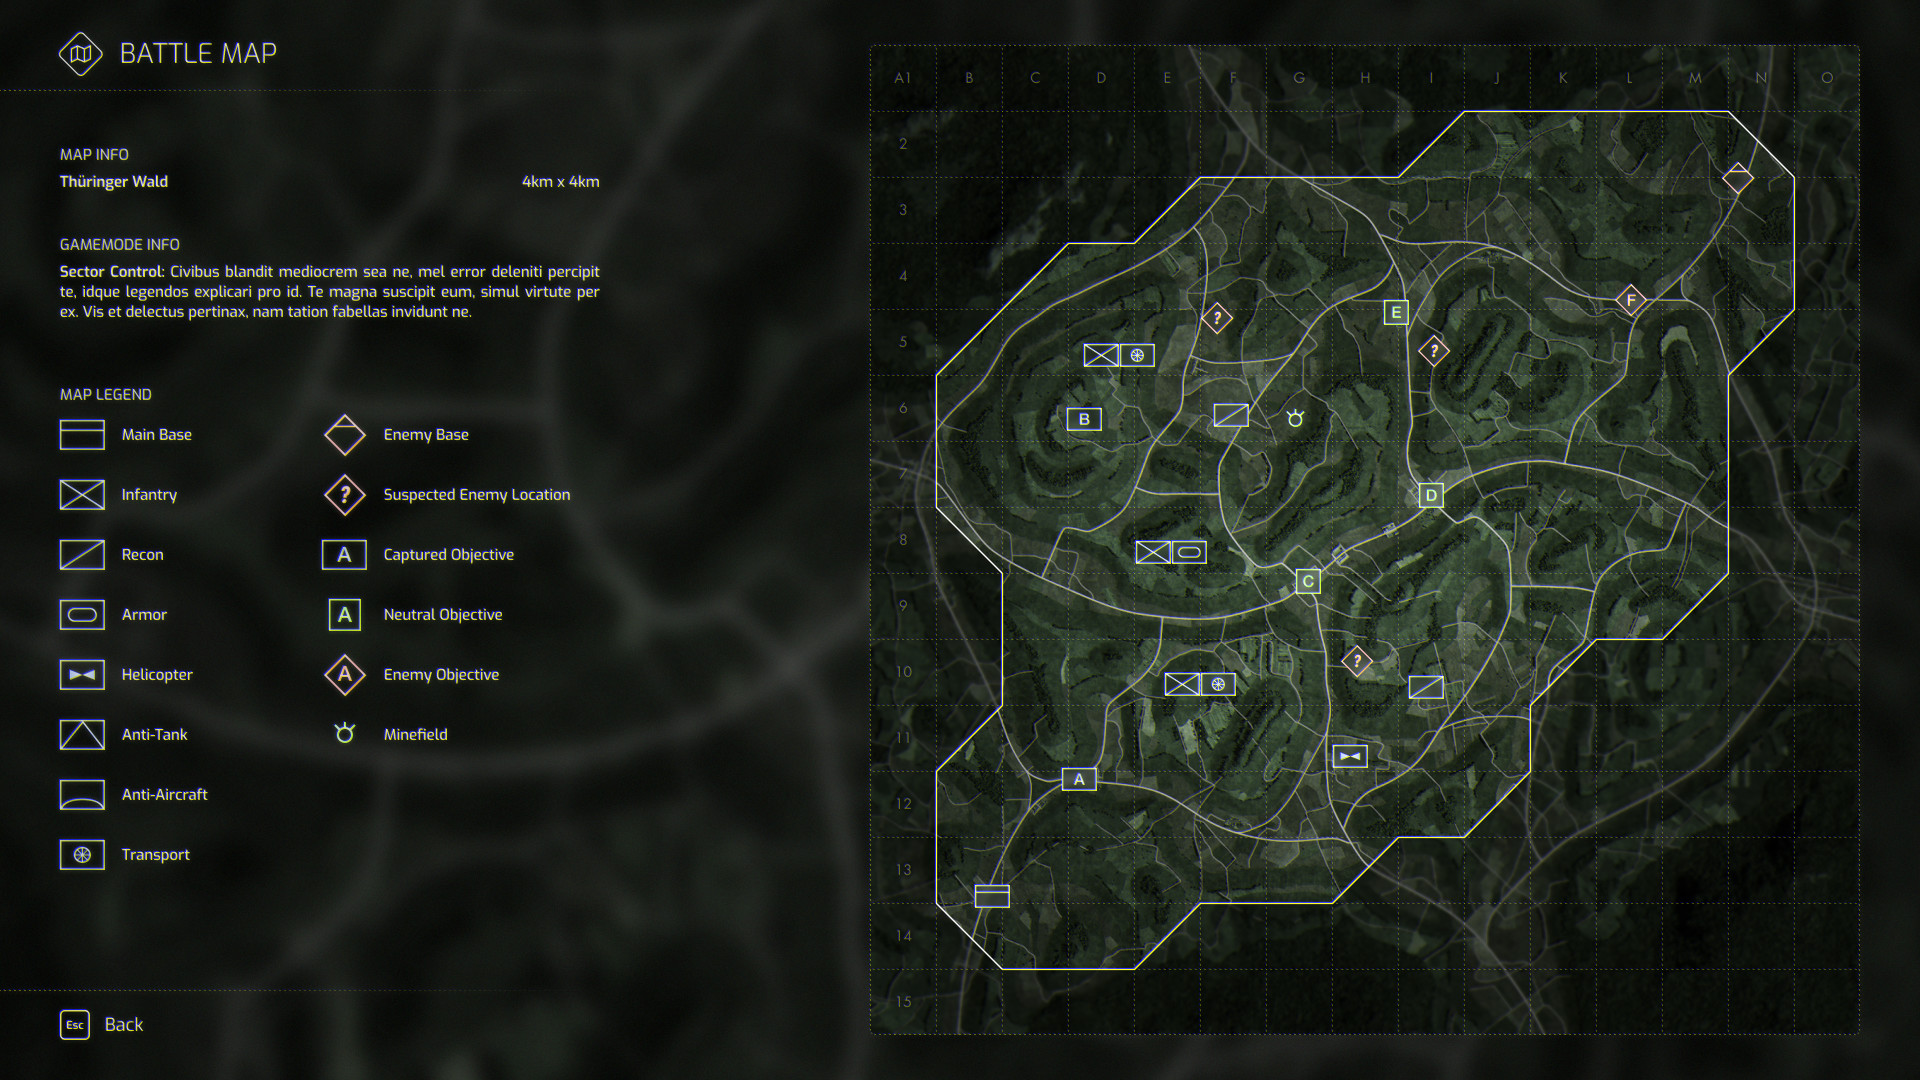 Map Overview